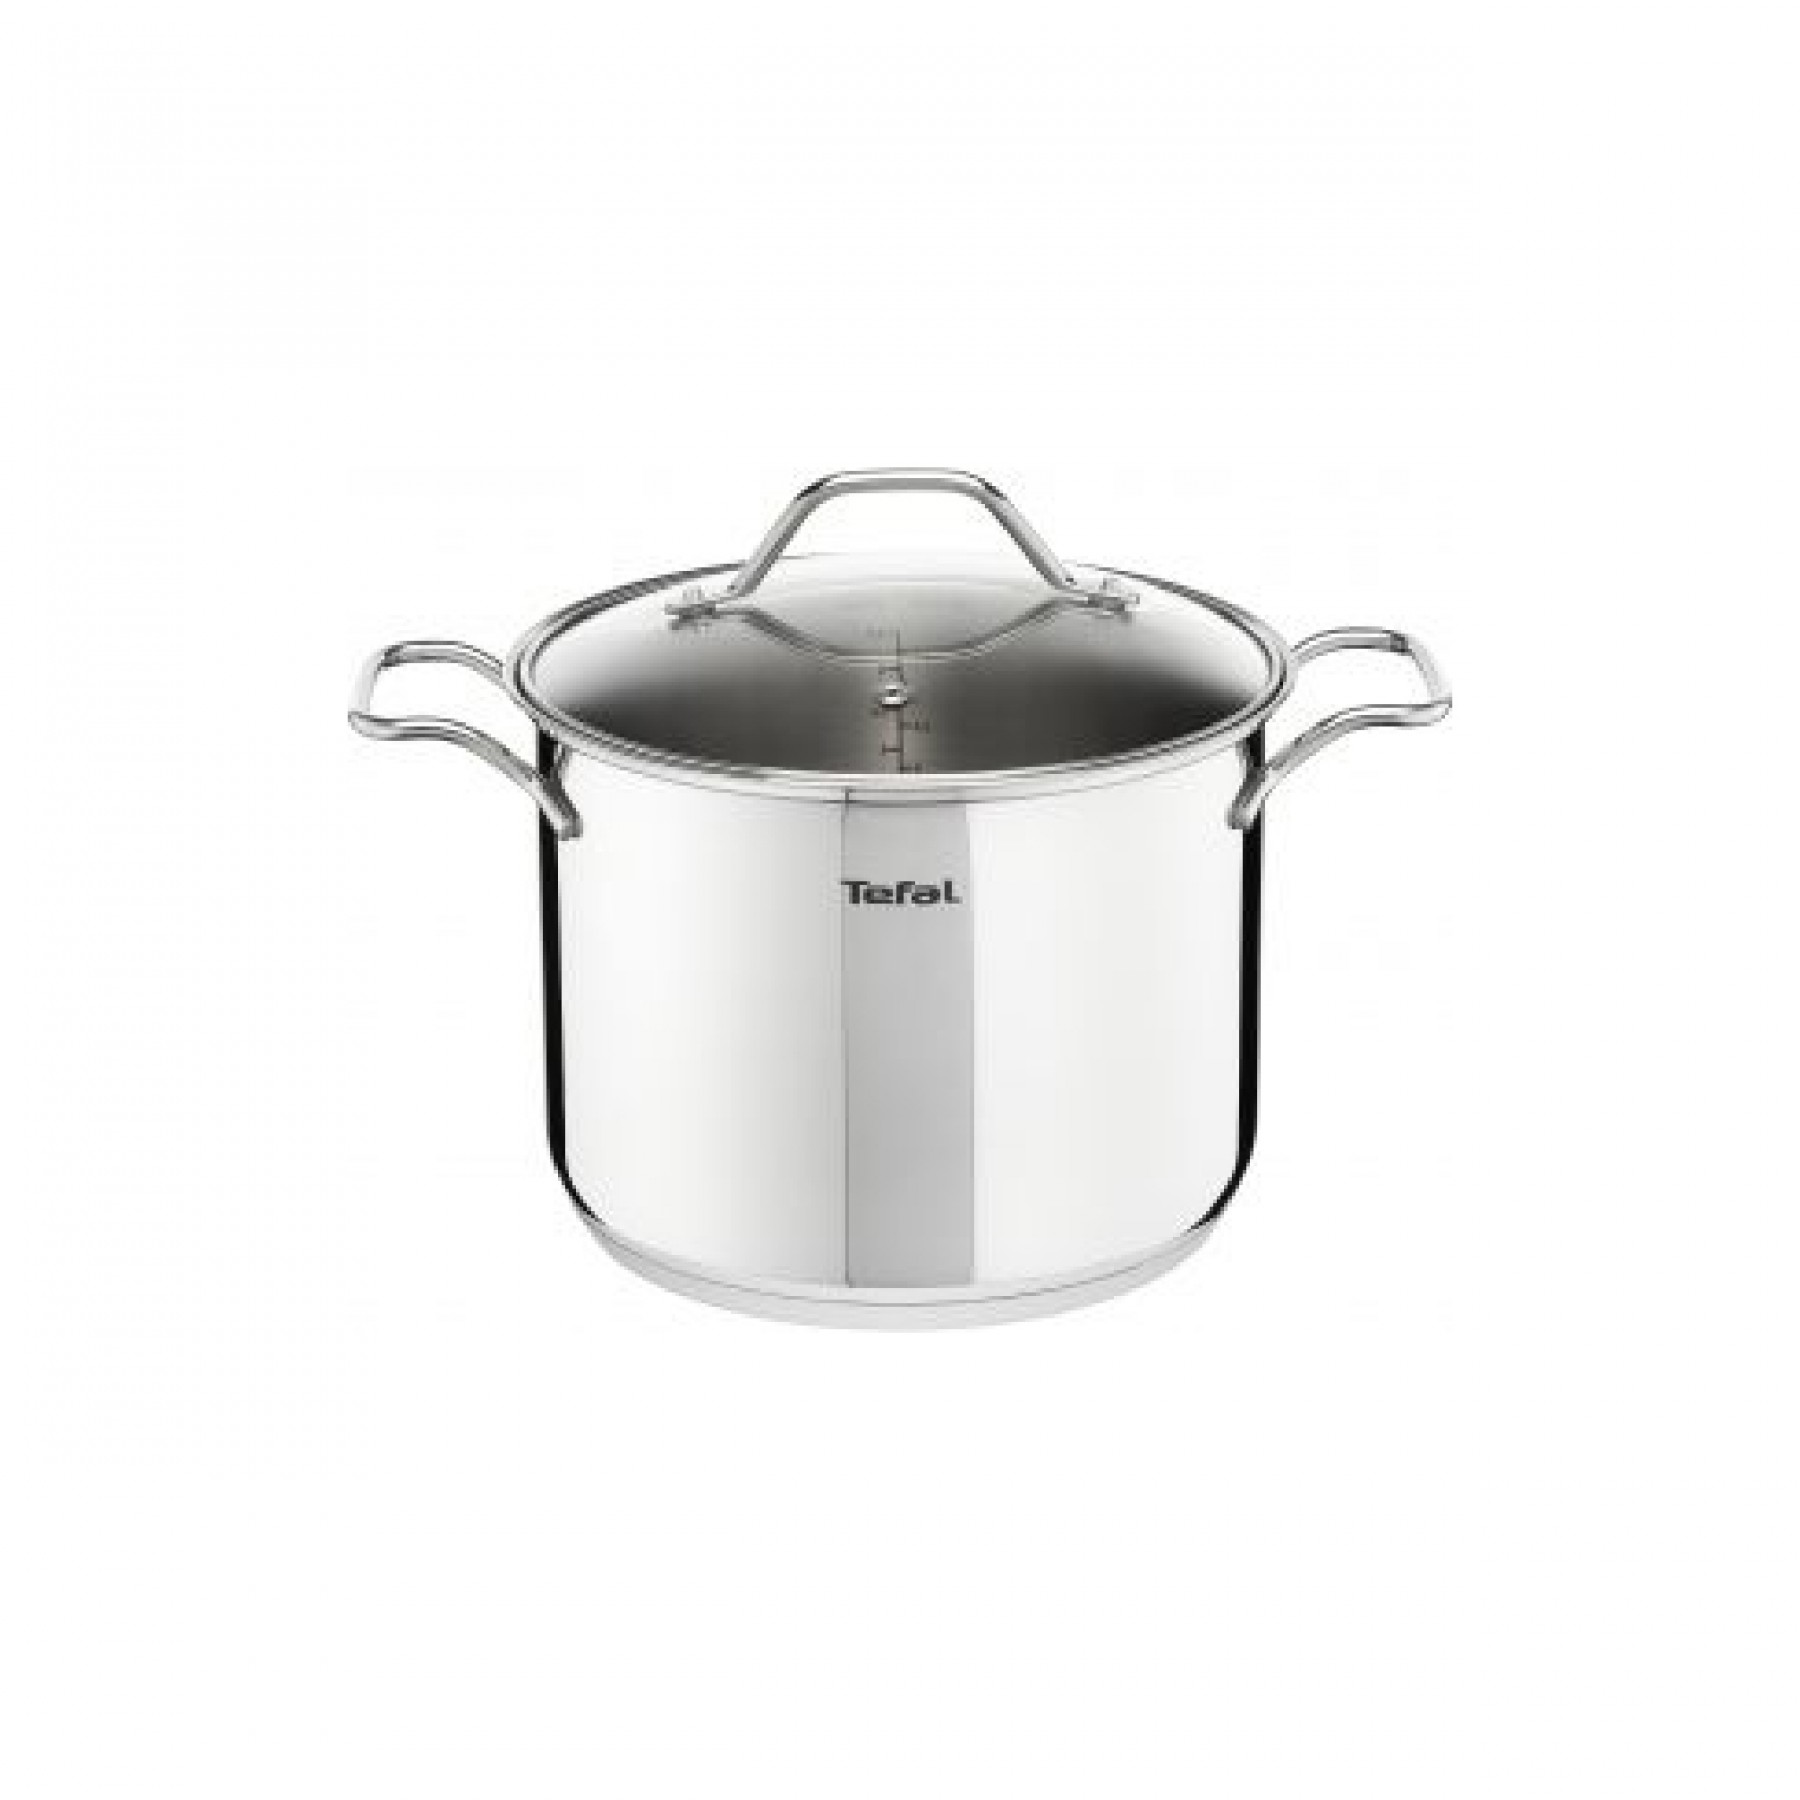 Tefal Intuition SS v2 Pasta Pot 22 with lid A7027985